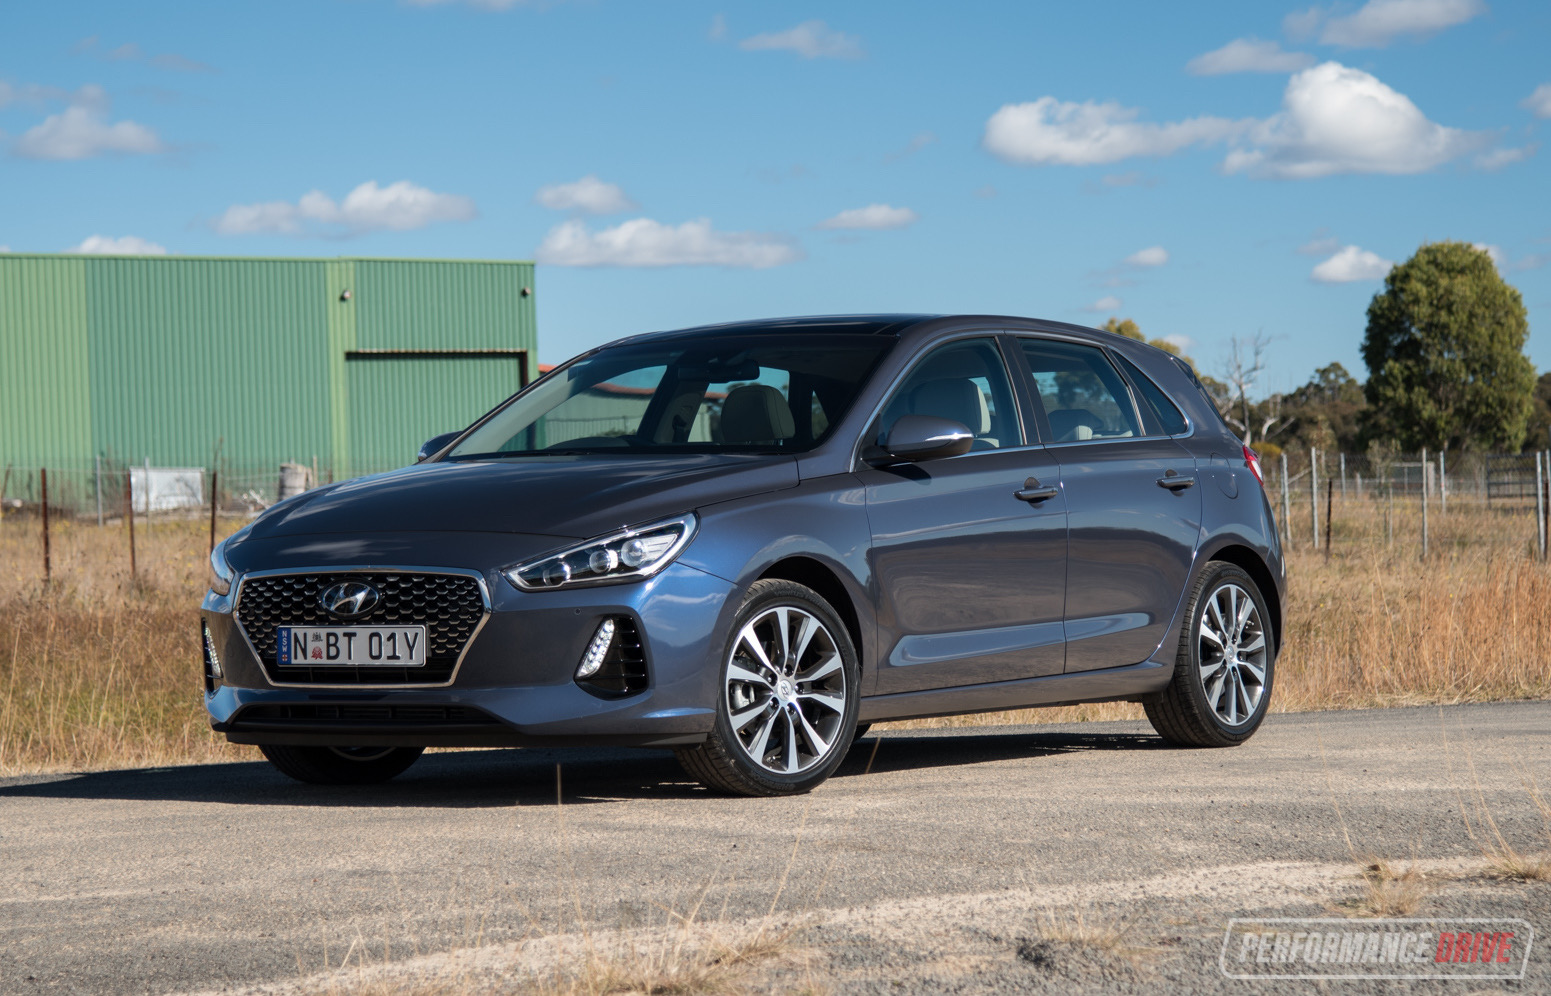 2018 Hyundai I30 Premium Diesel Review Video